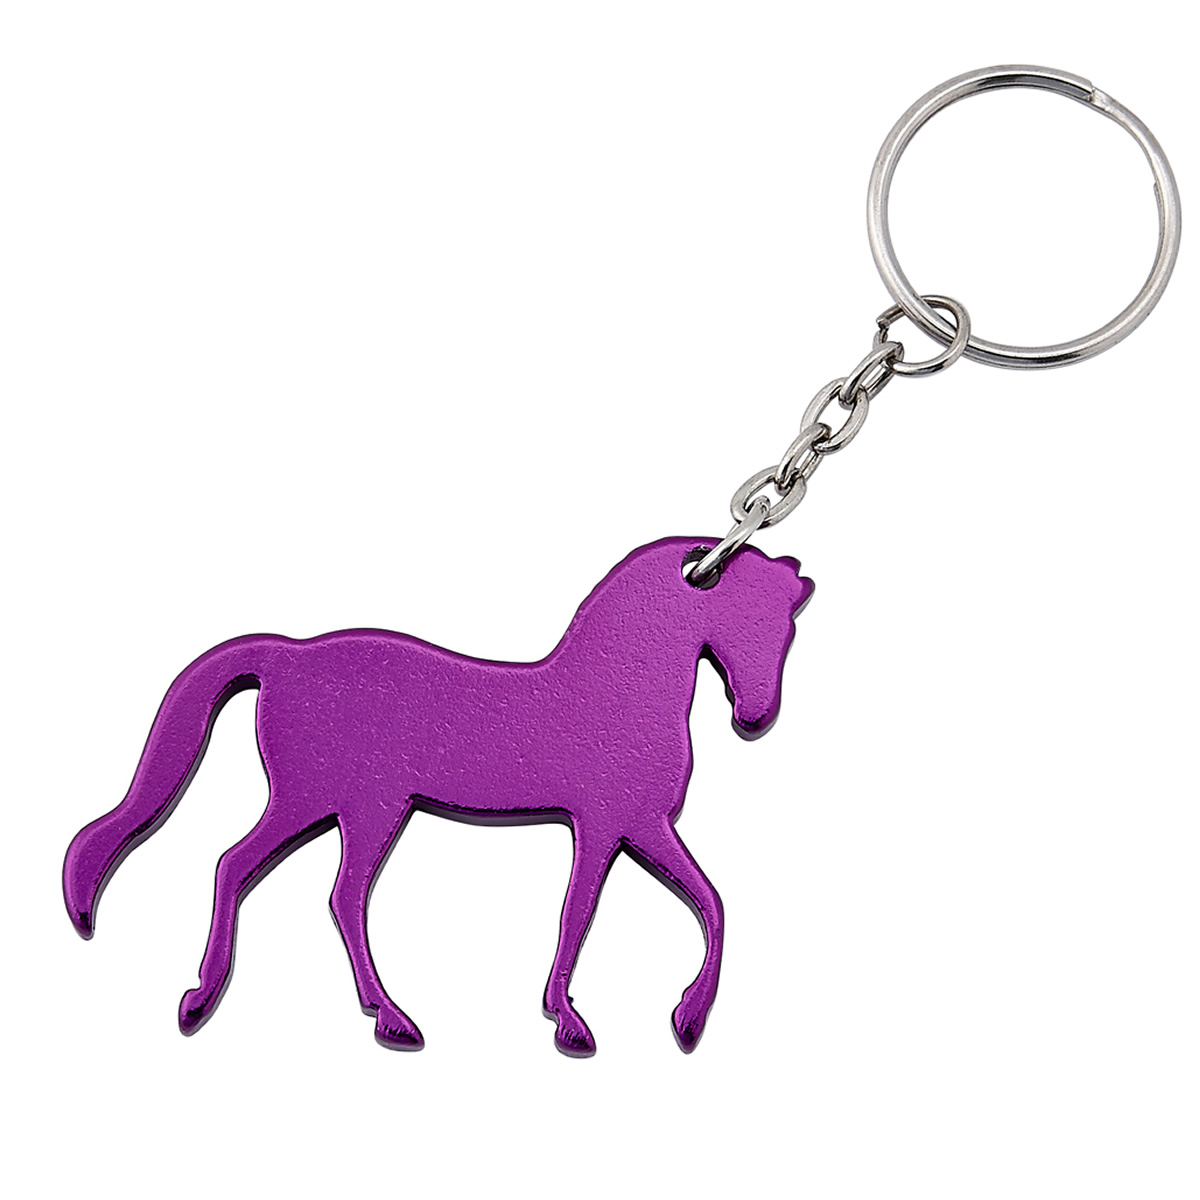 Purple Prancing Horse Key Chain Filly And Co